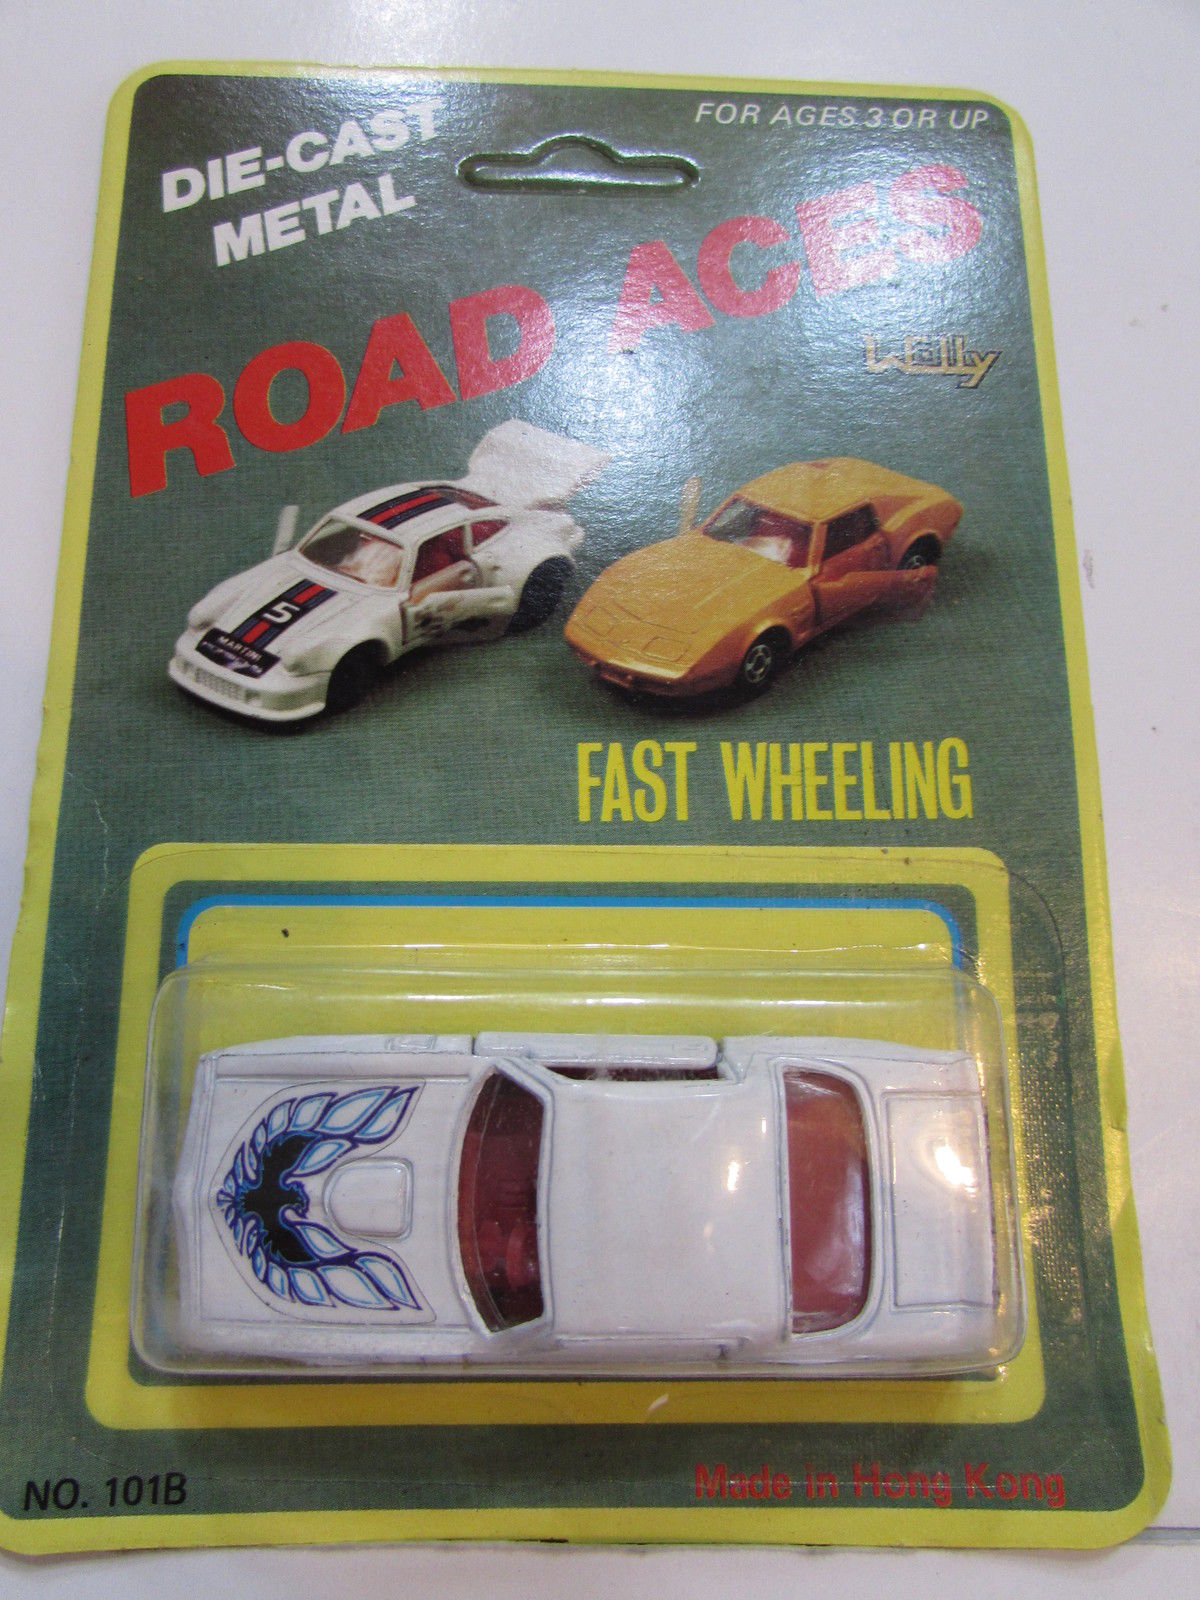 ROAD ACES FAST WHEELING - HOT BIRD TRANS AM WHITE MADE IN HONG KONG